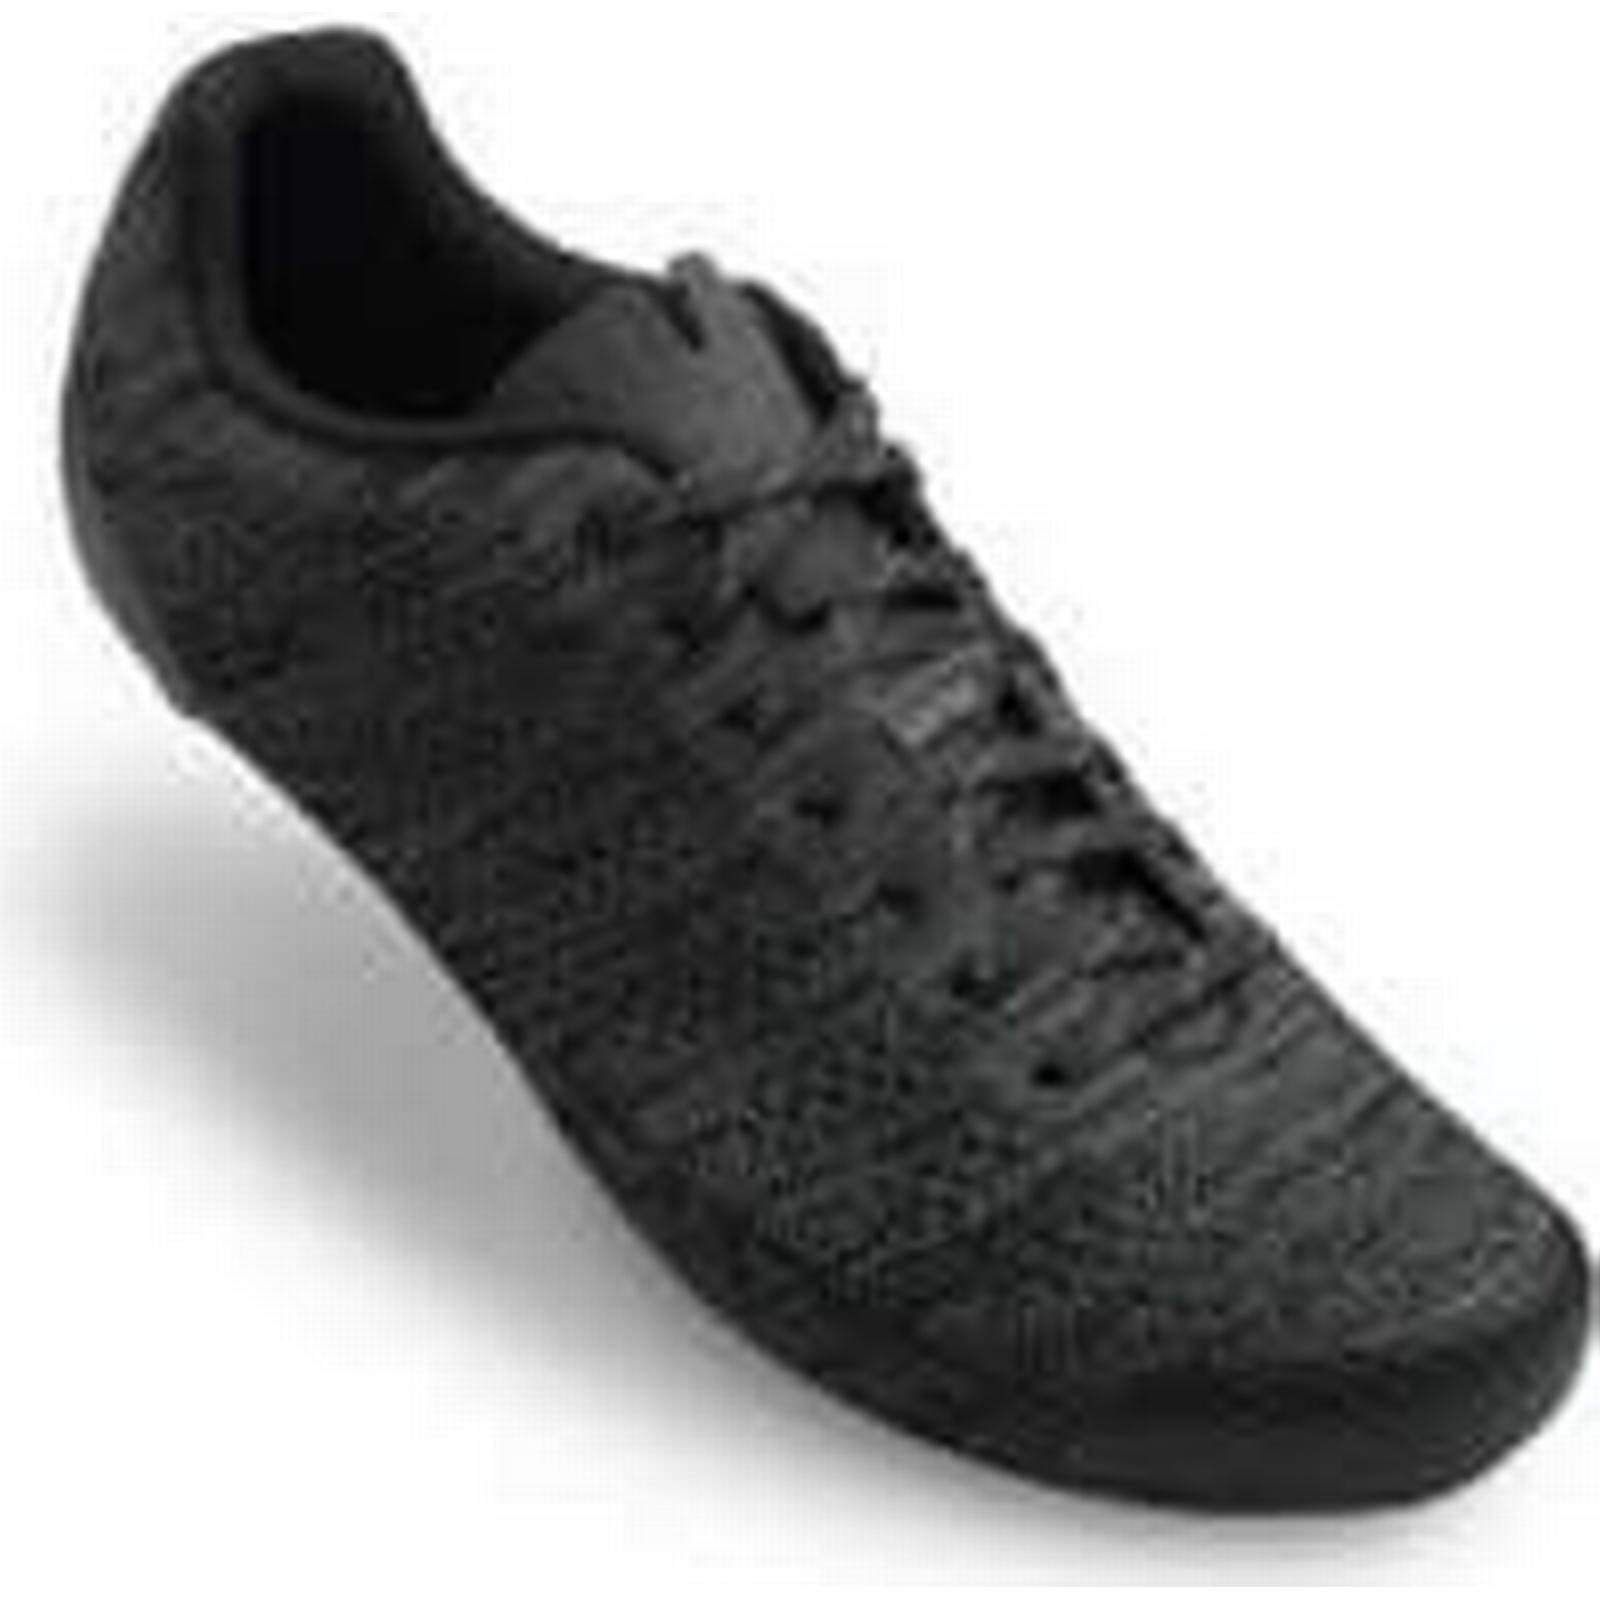 Giro Empire E70 Knit Road Cycling Shoes - 45/UK Black/Charcoal Heather - EU 45/UK - 10 - Black e6558a